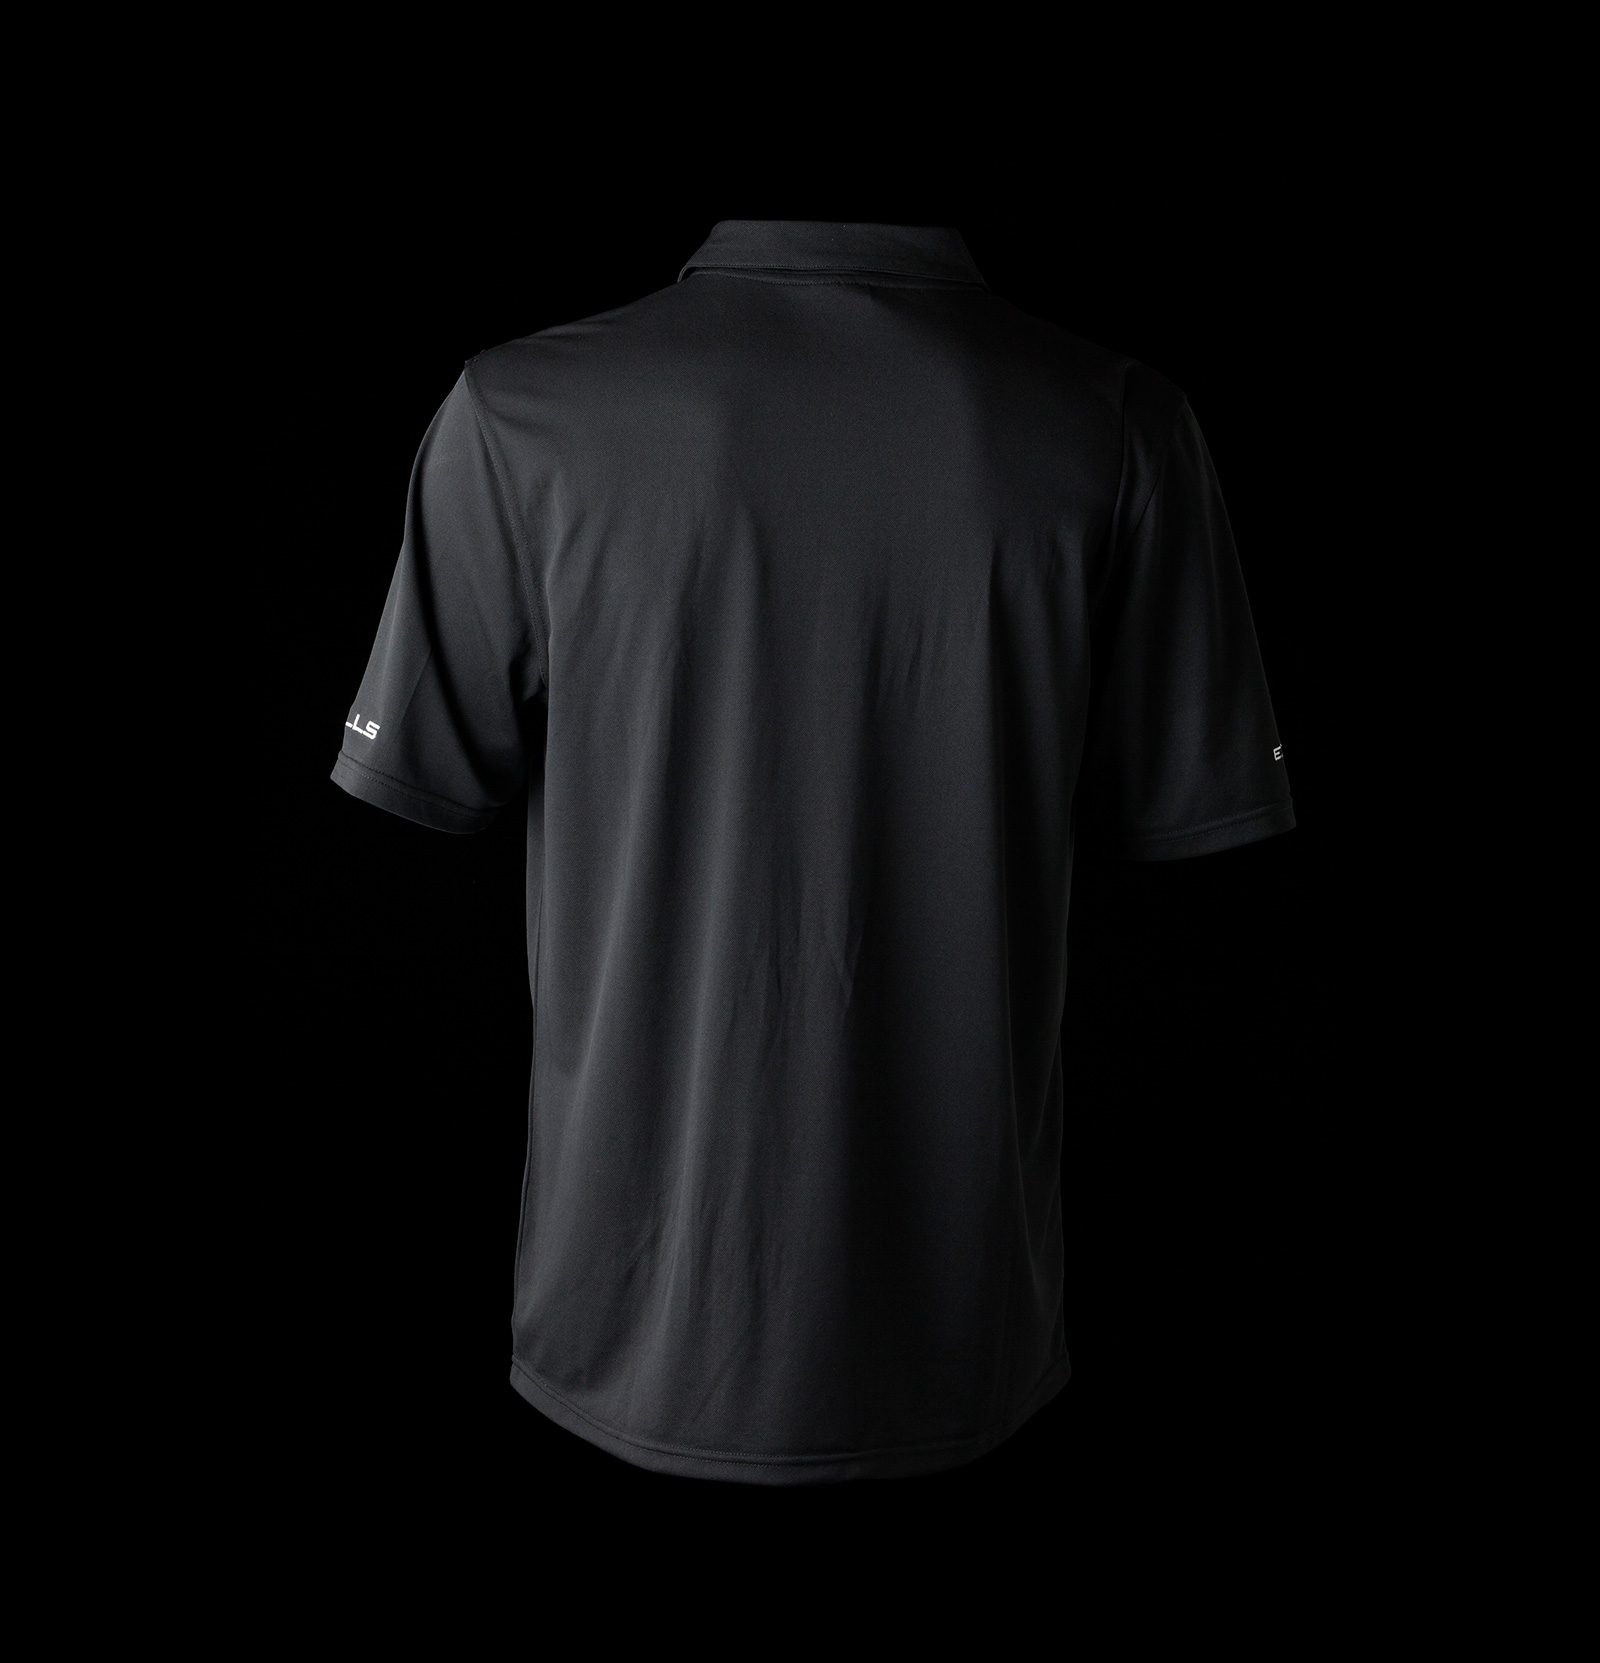 Excel-Polo-Shirt-Promo-36